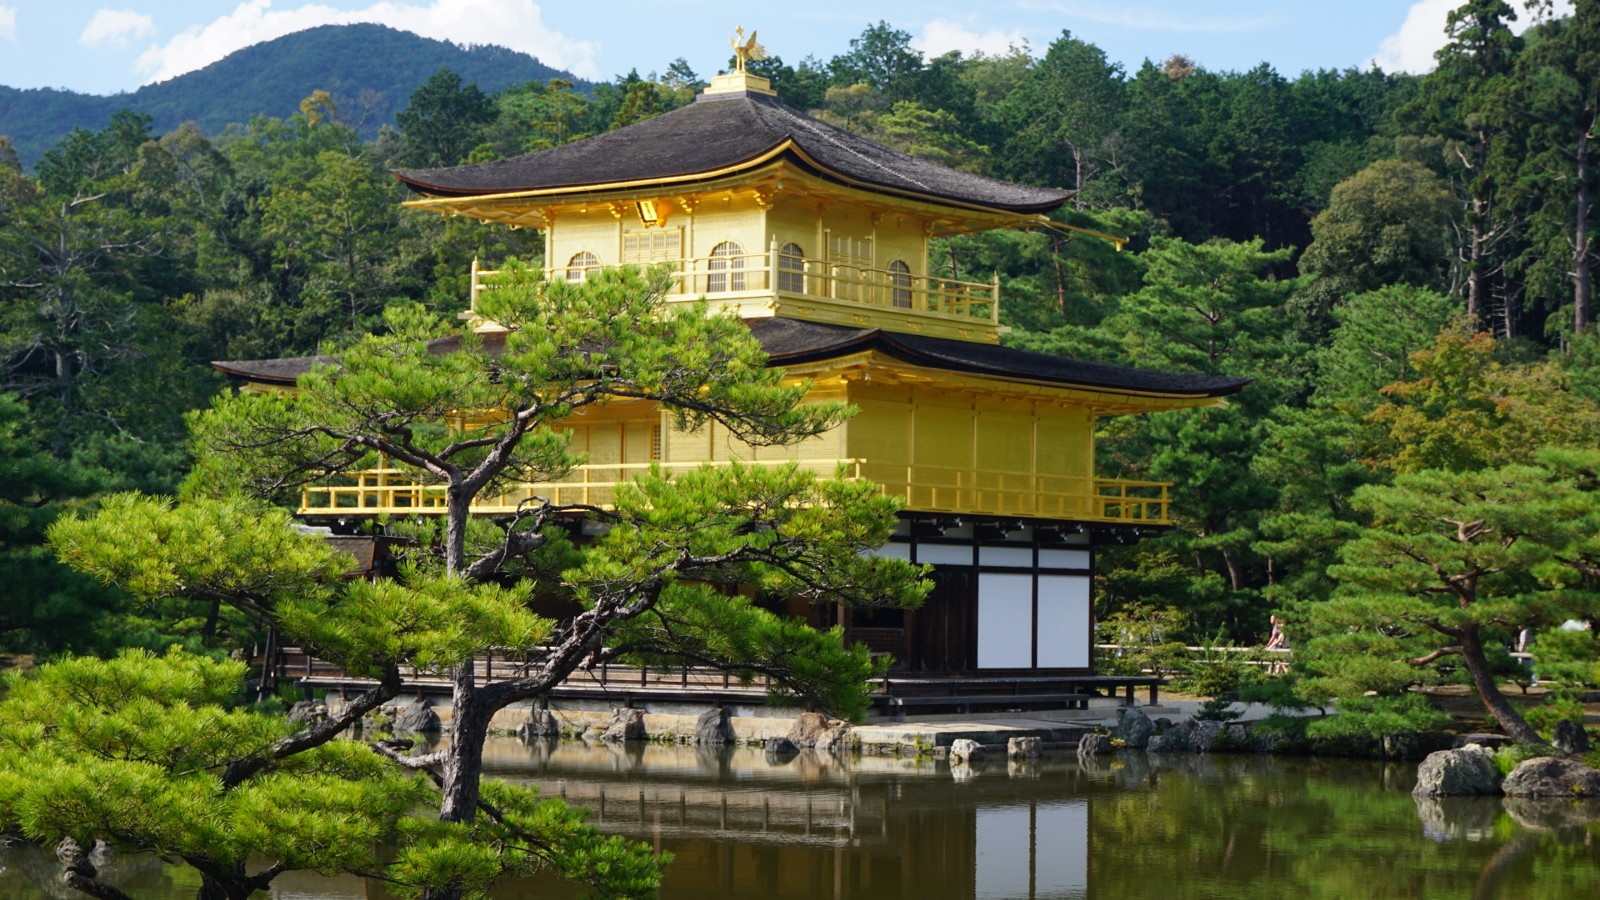 Tourist Destinations In Kyoto- Kinkakuji Temple